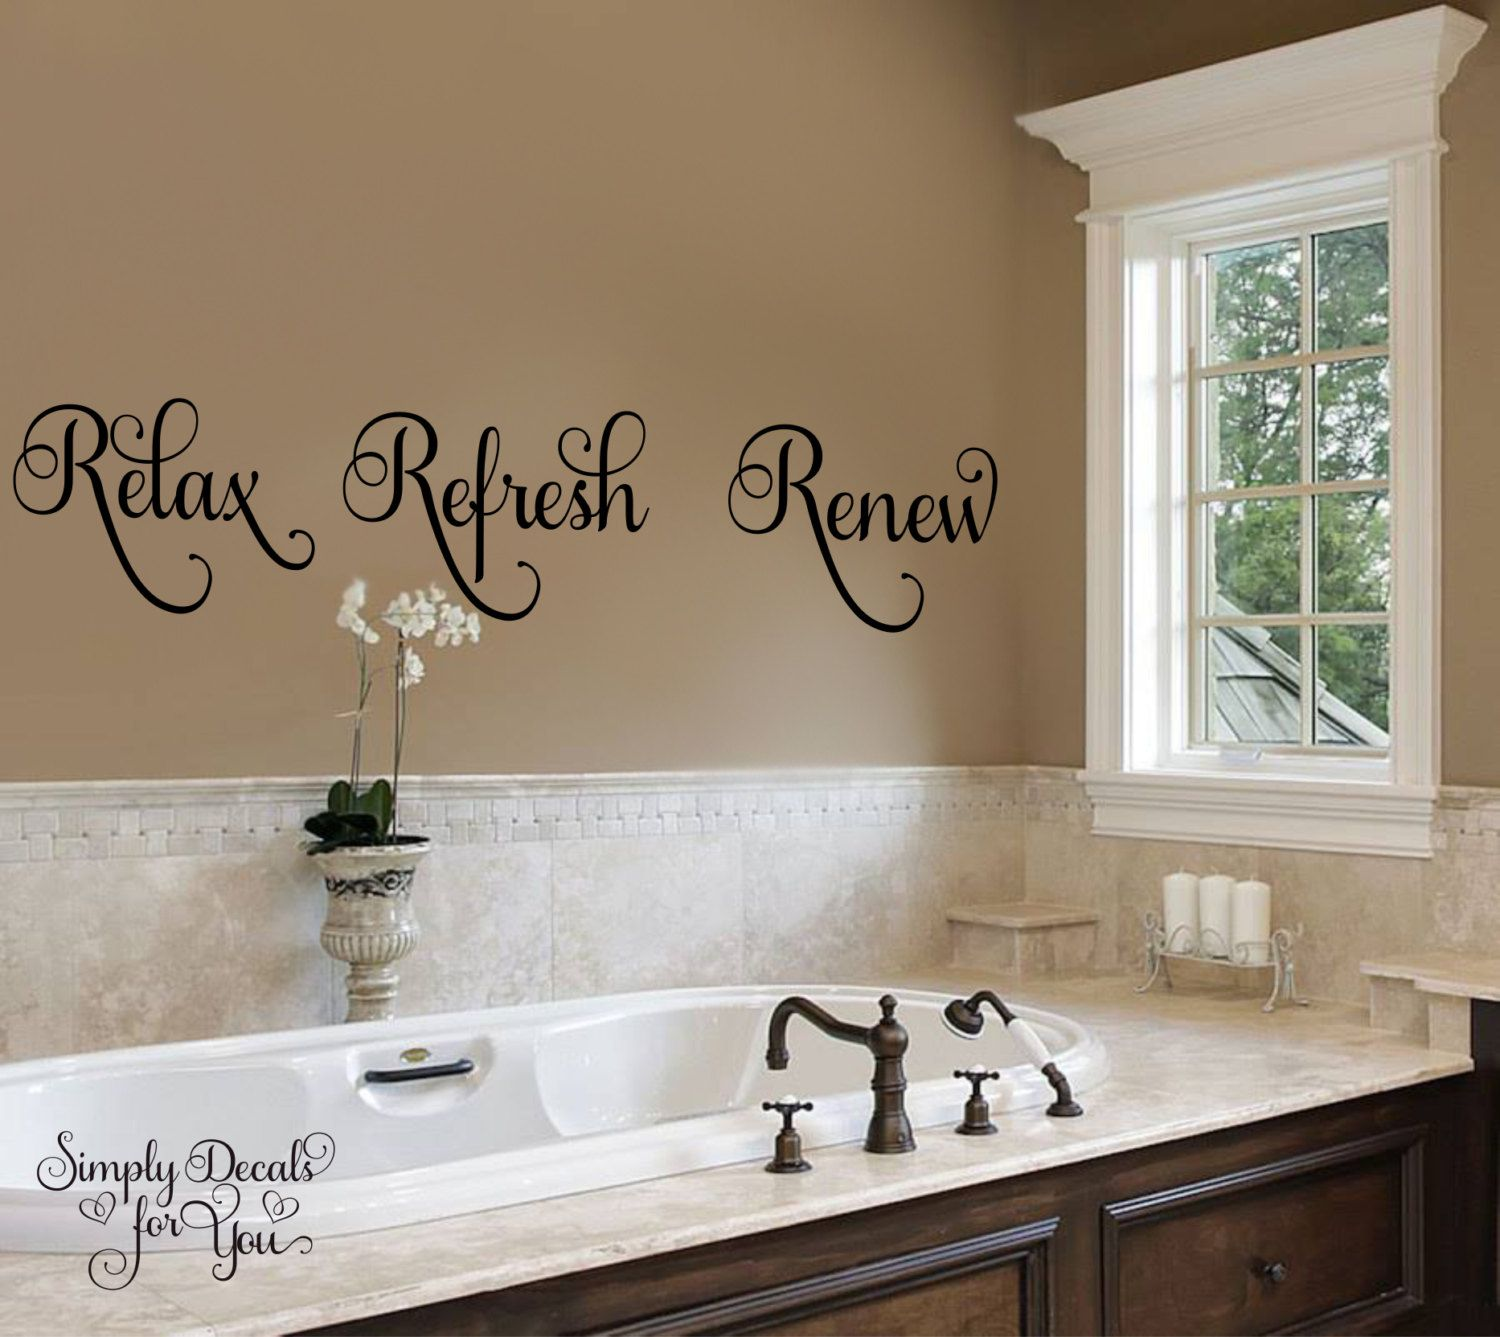 Relax Refresh Renew Bathroom Wall Decal